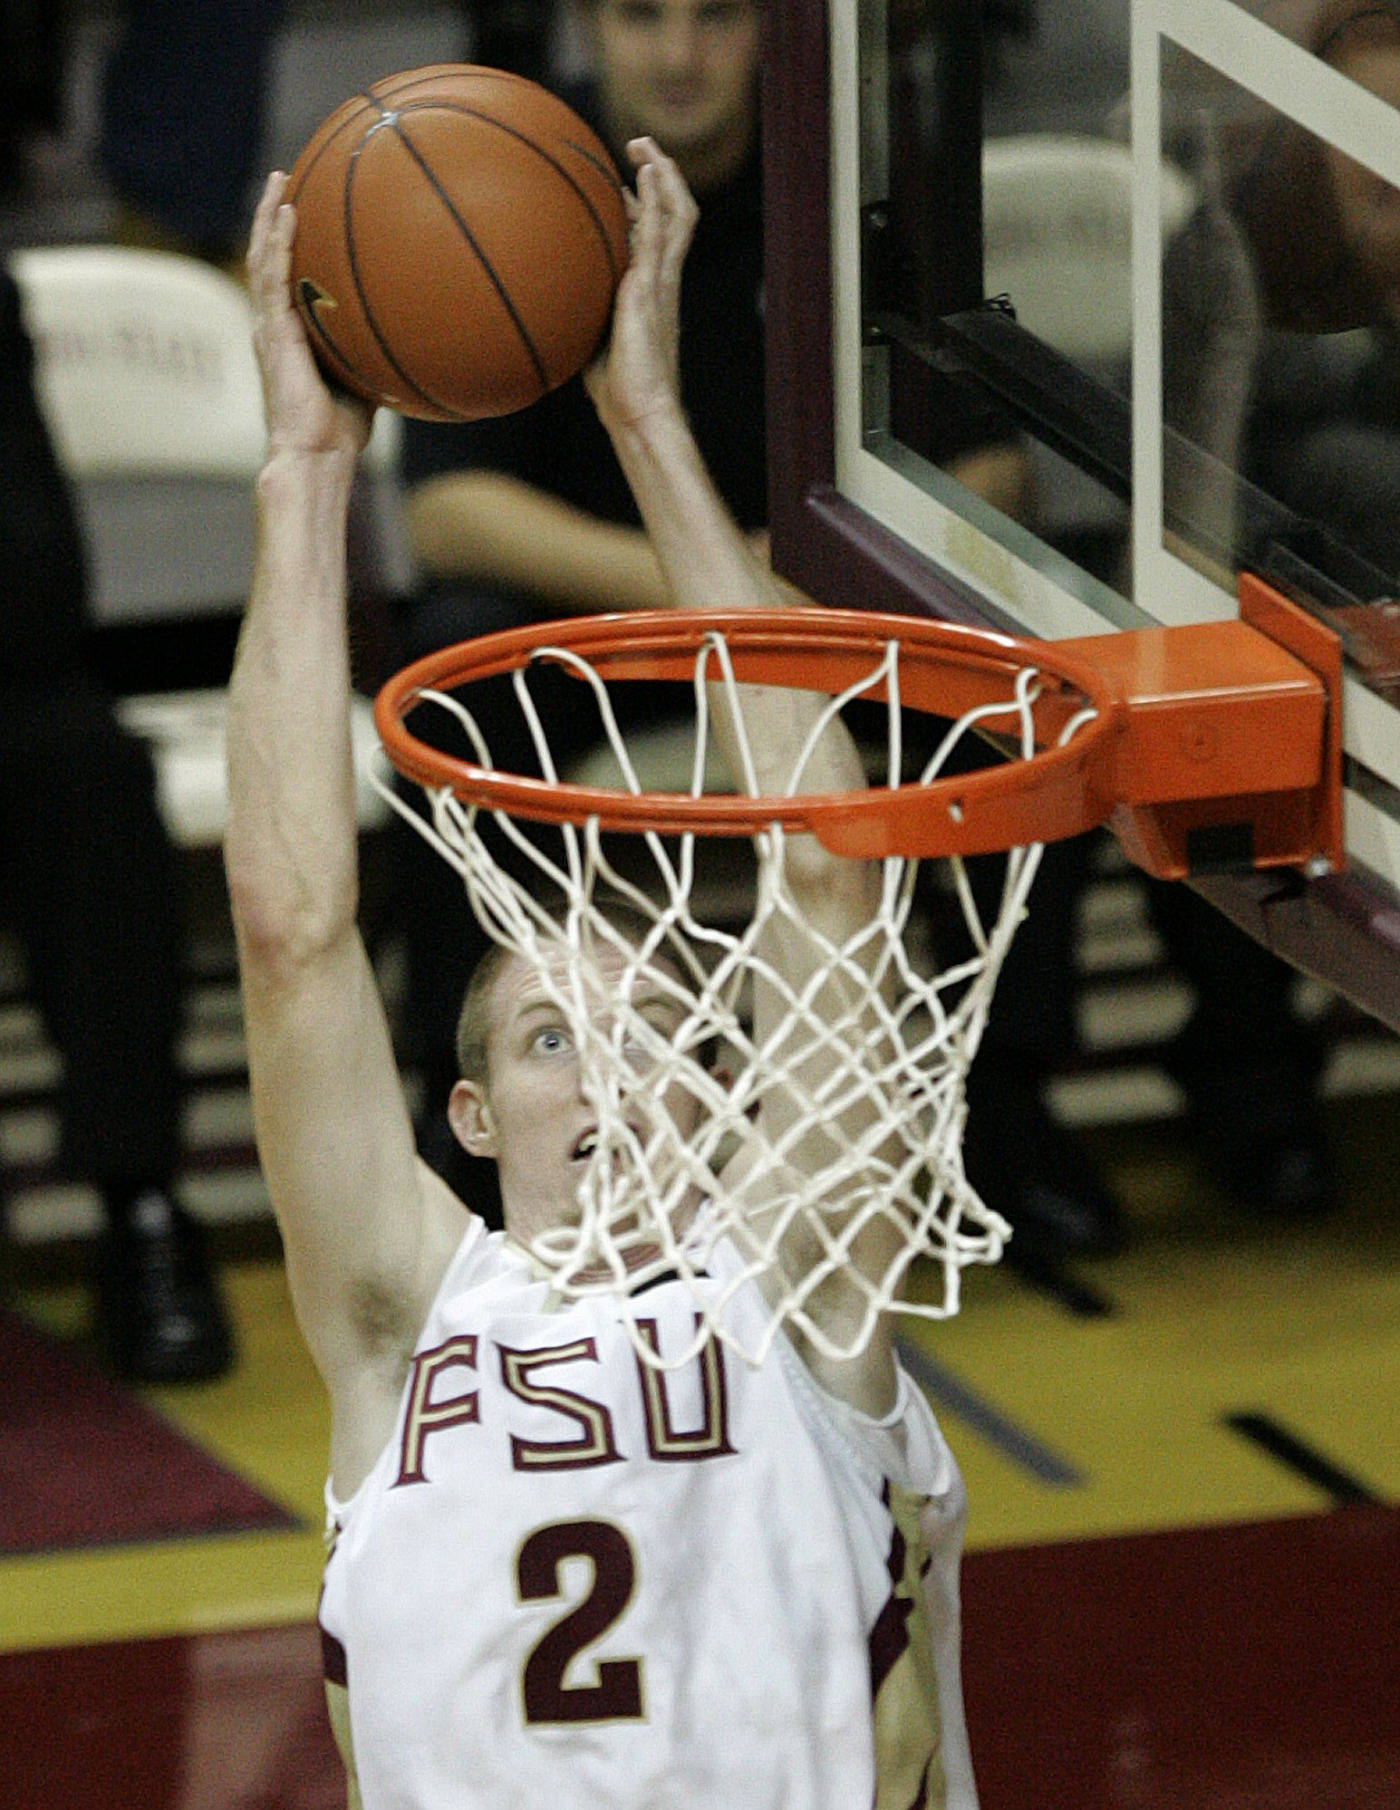 Florida State's Jordan Demercy dunks against Maine in the second half.